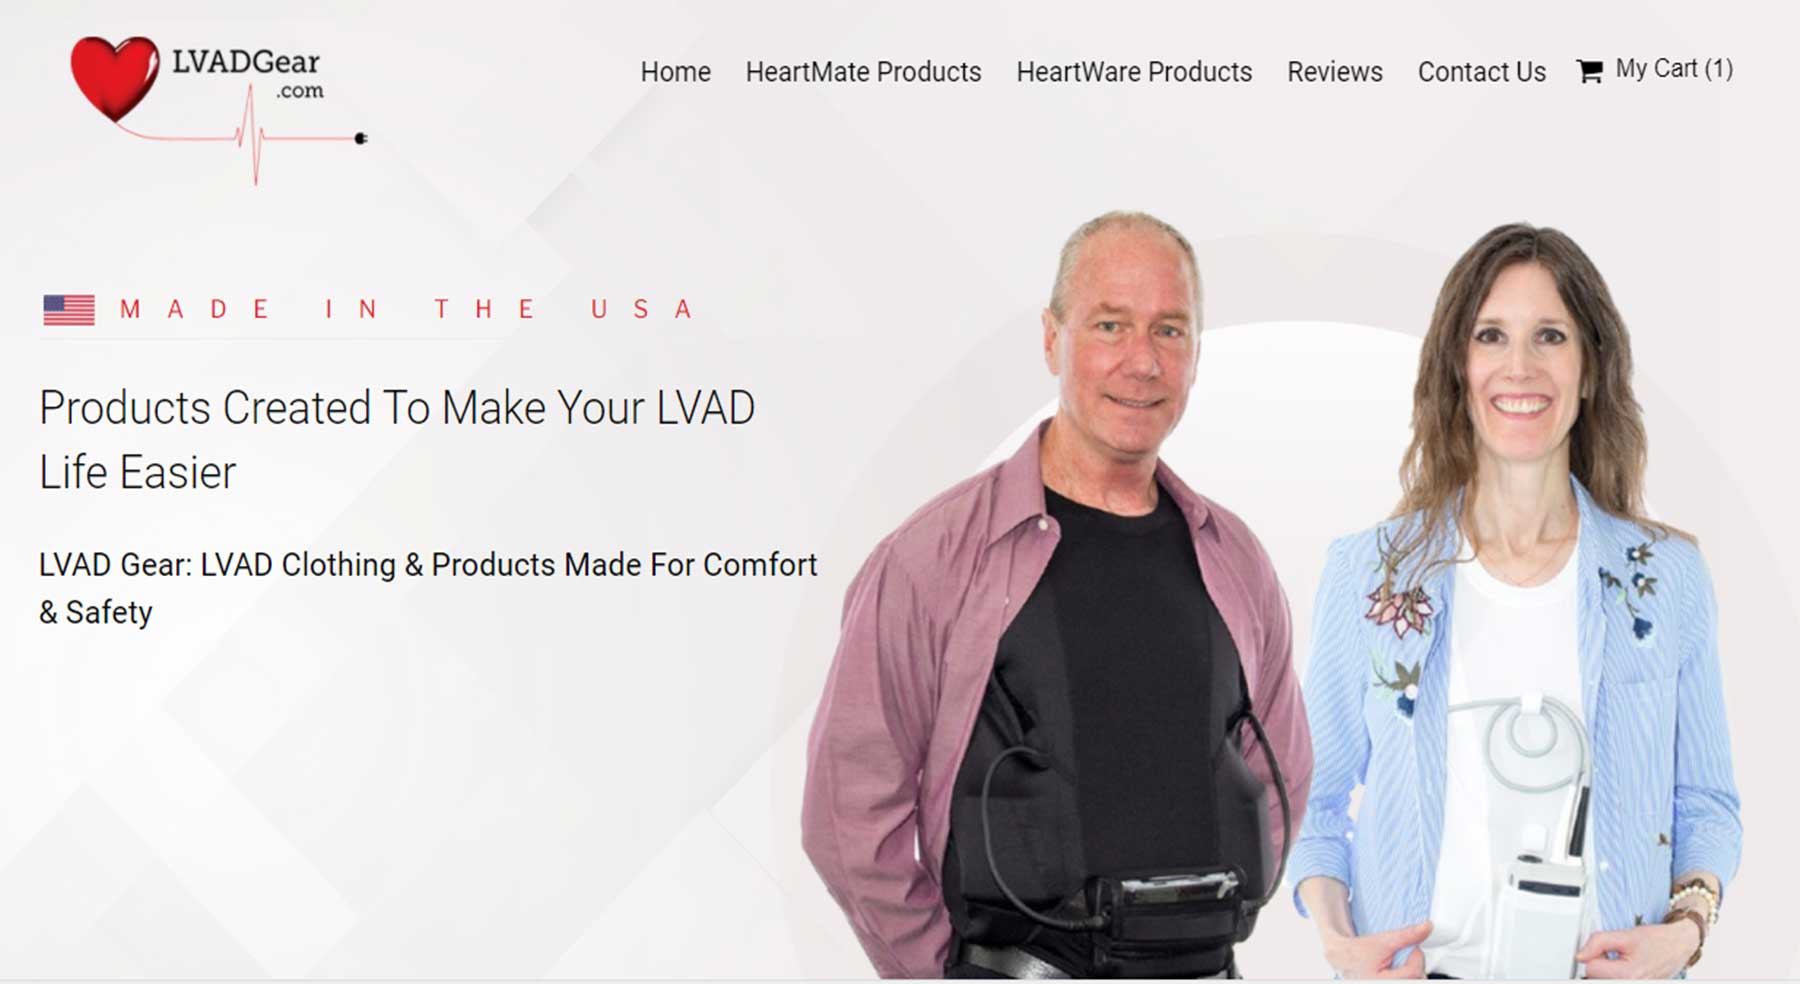 Website Design & Online Store for LVAD Clothing & Accessories